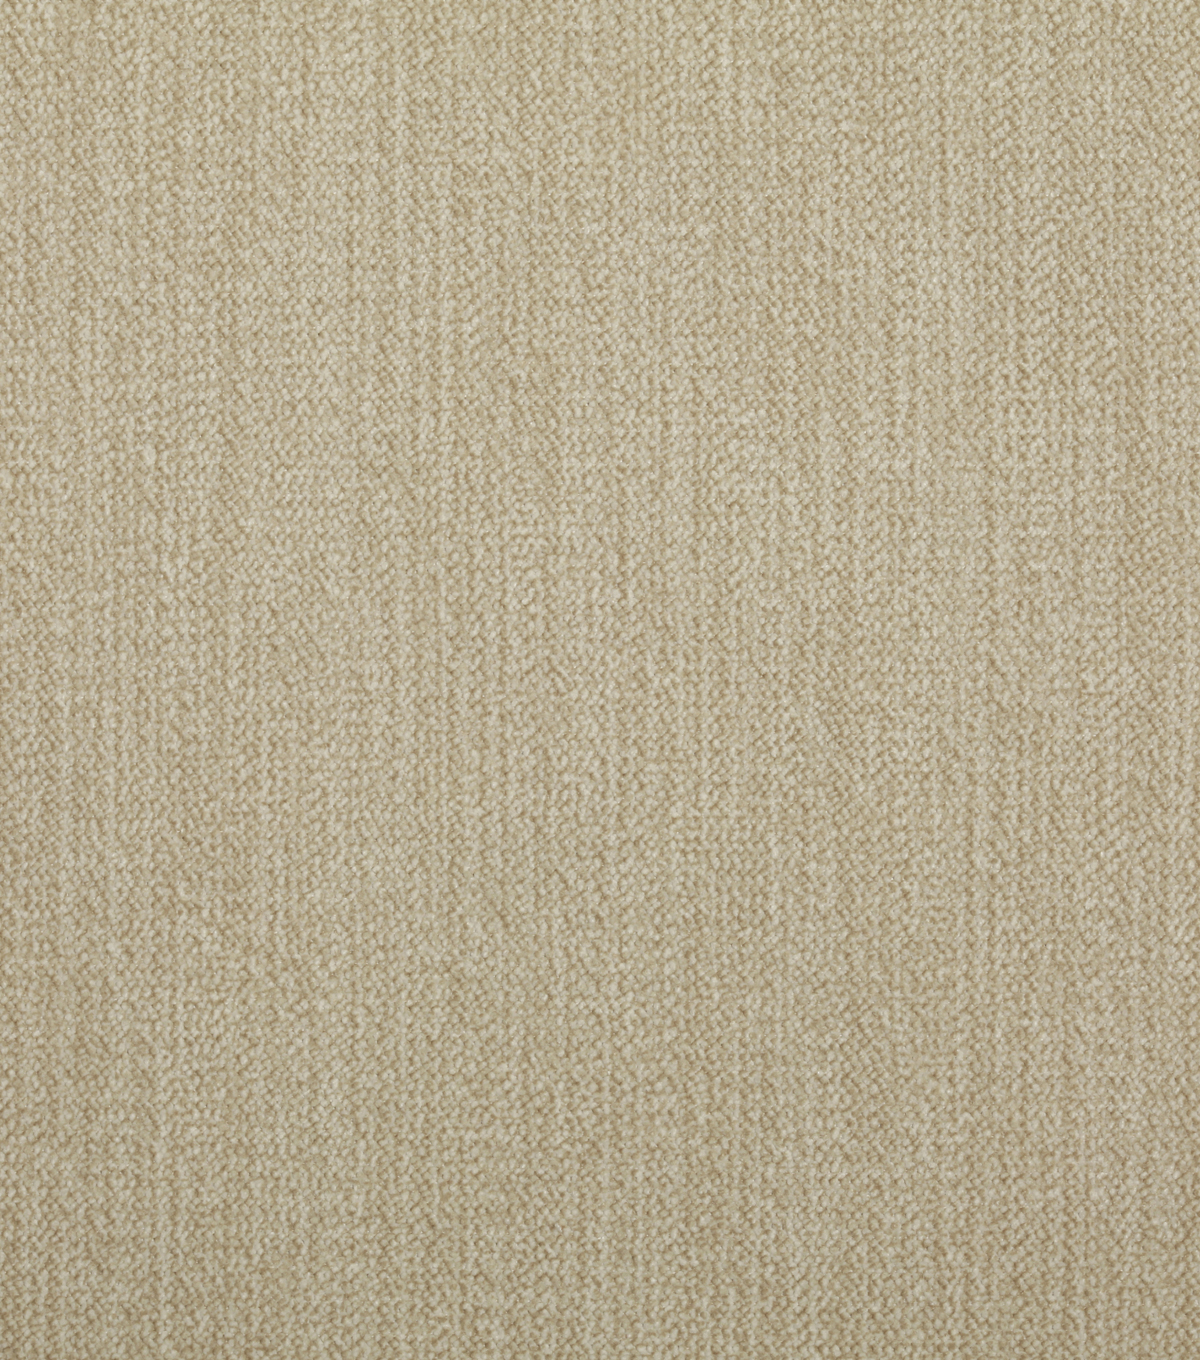 Crypton Upholstery Fabric Swatch-Graceland Buff